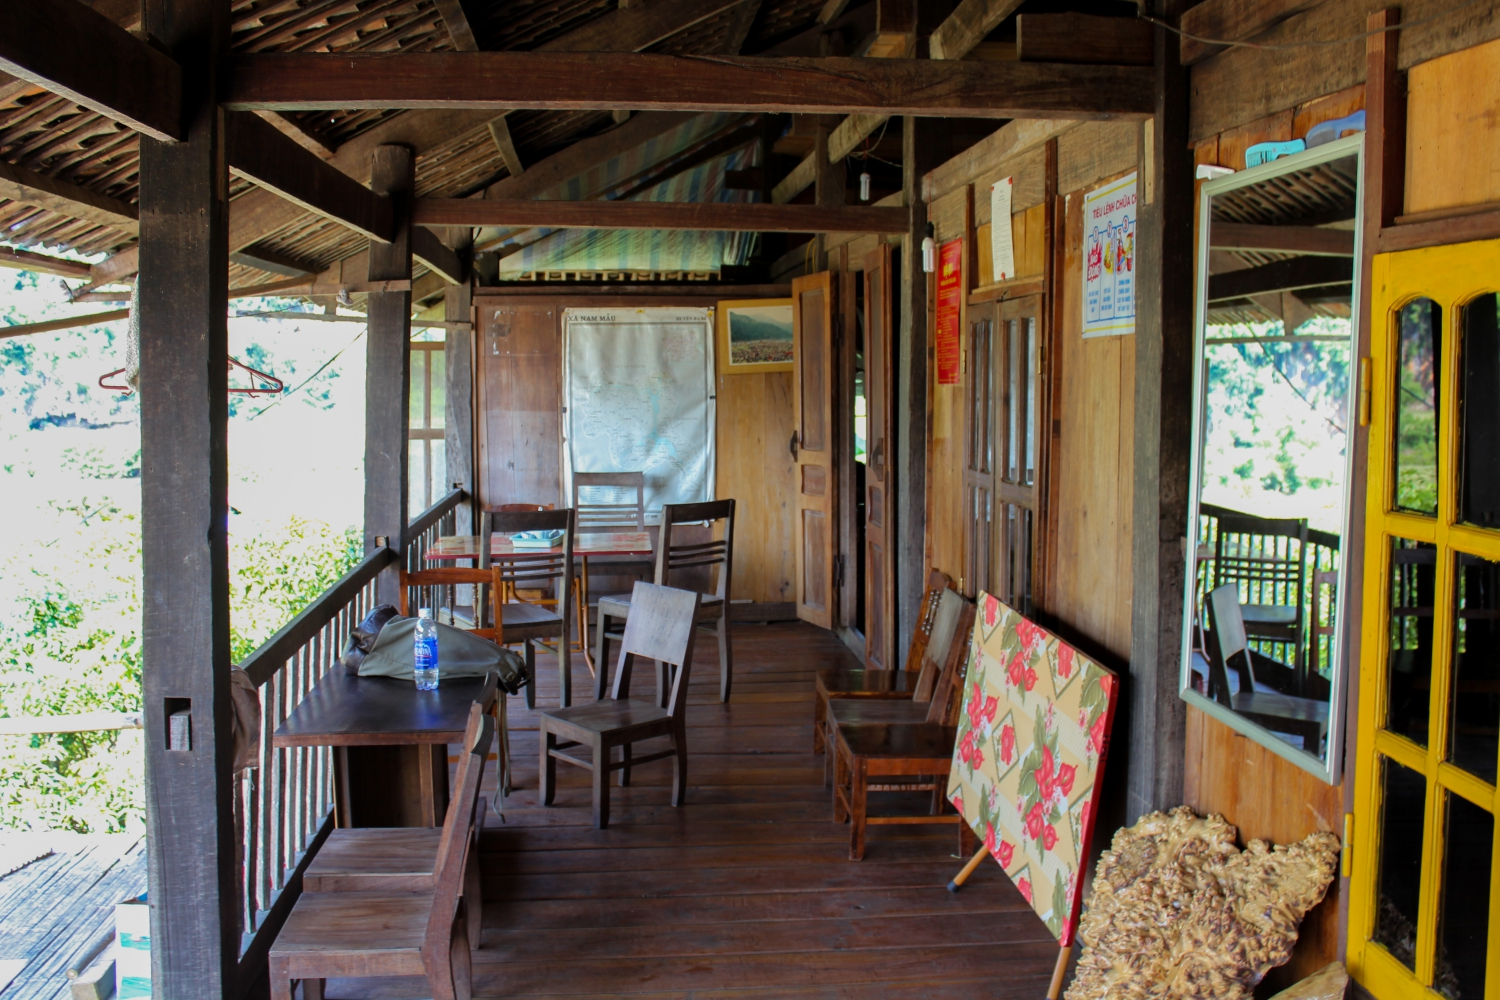 Intimate homestay experience